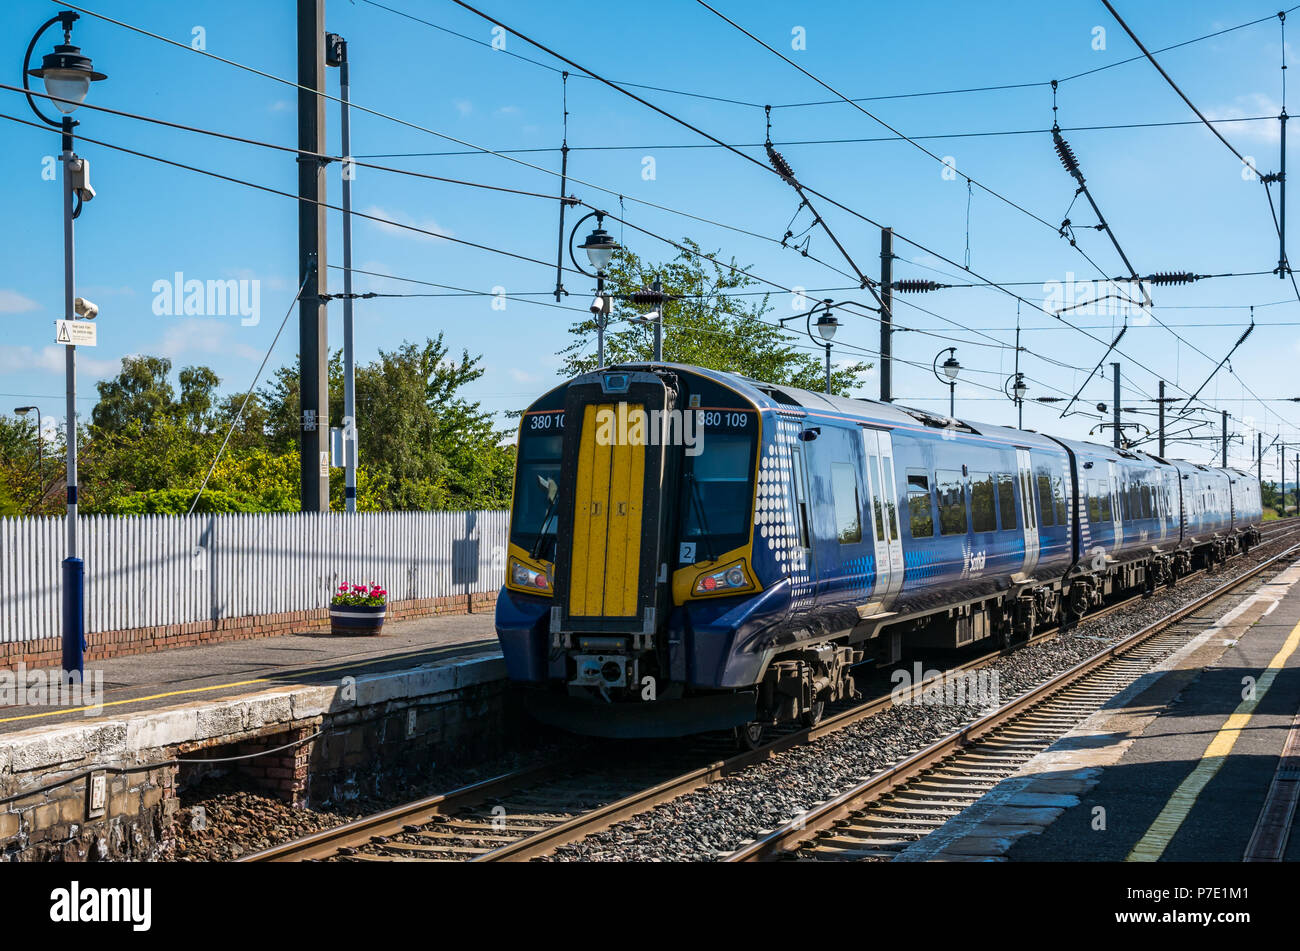 ScotRail train leaving Drem Station in Summer with blue sky, East Lothian, Scotland, UK - Stock Image